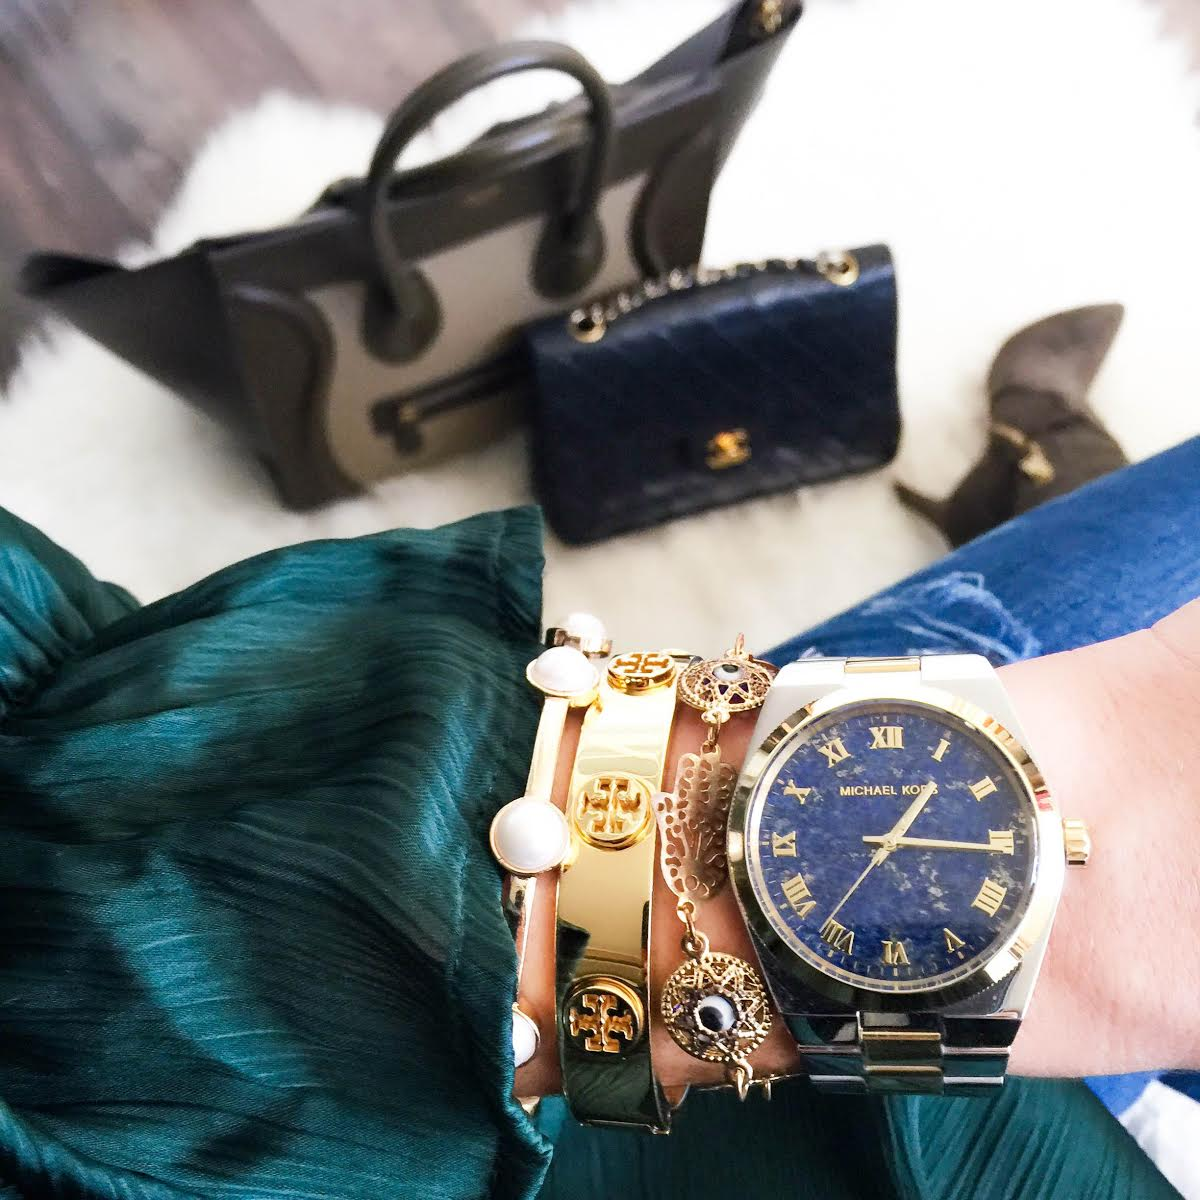 details-outfit-michaelkors-watch